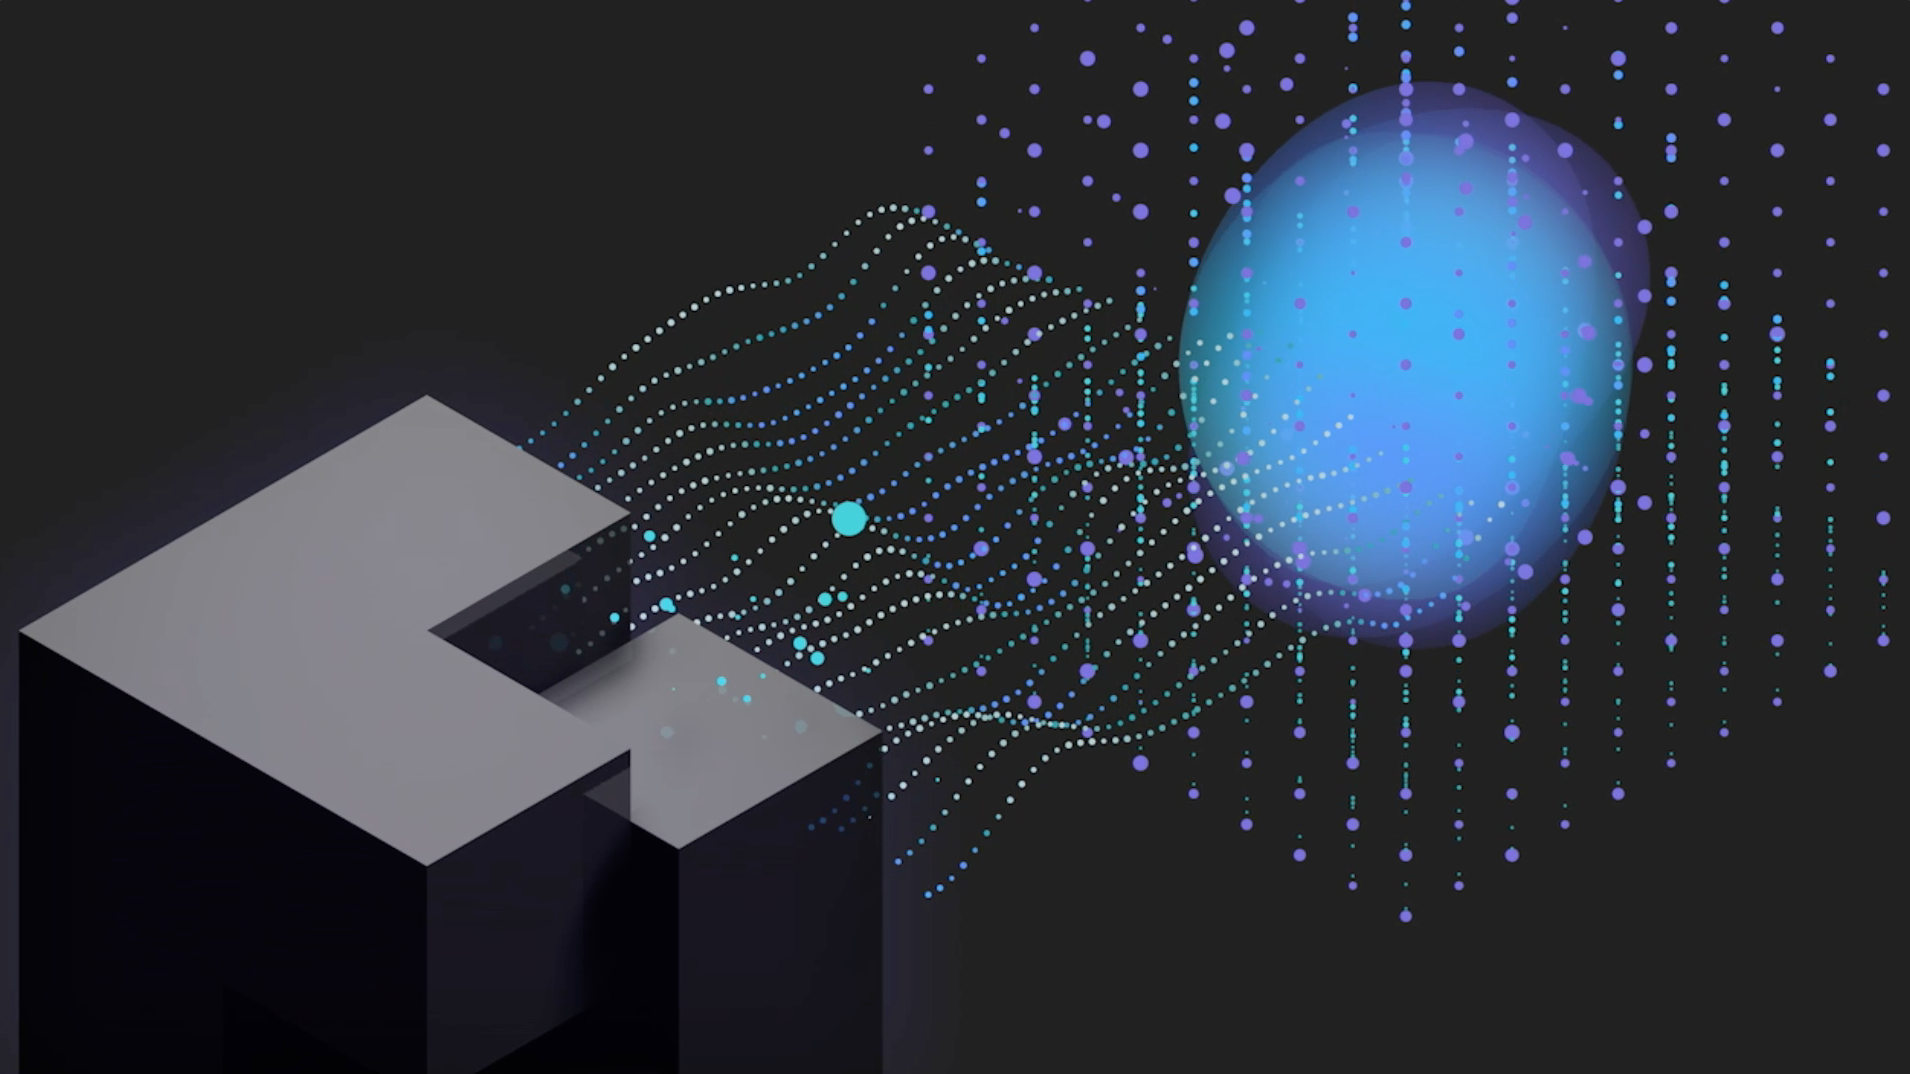 Screen capture of motion design video with grey towers with wavy design dots moving towards a boxed dots with a large blue circular inside